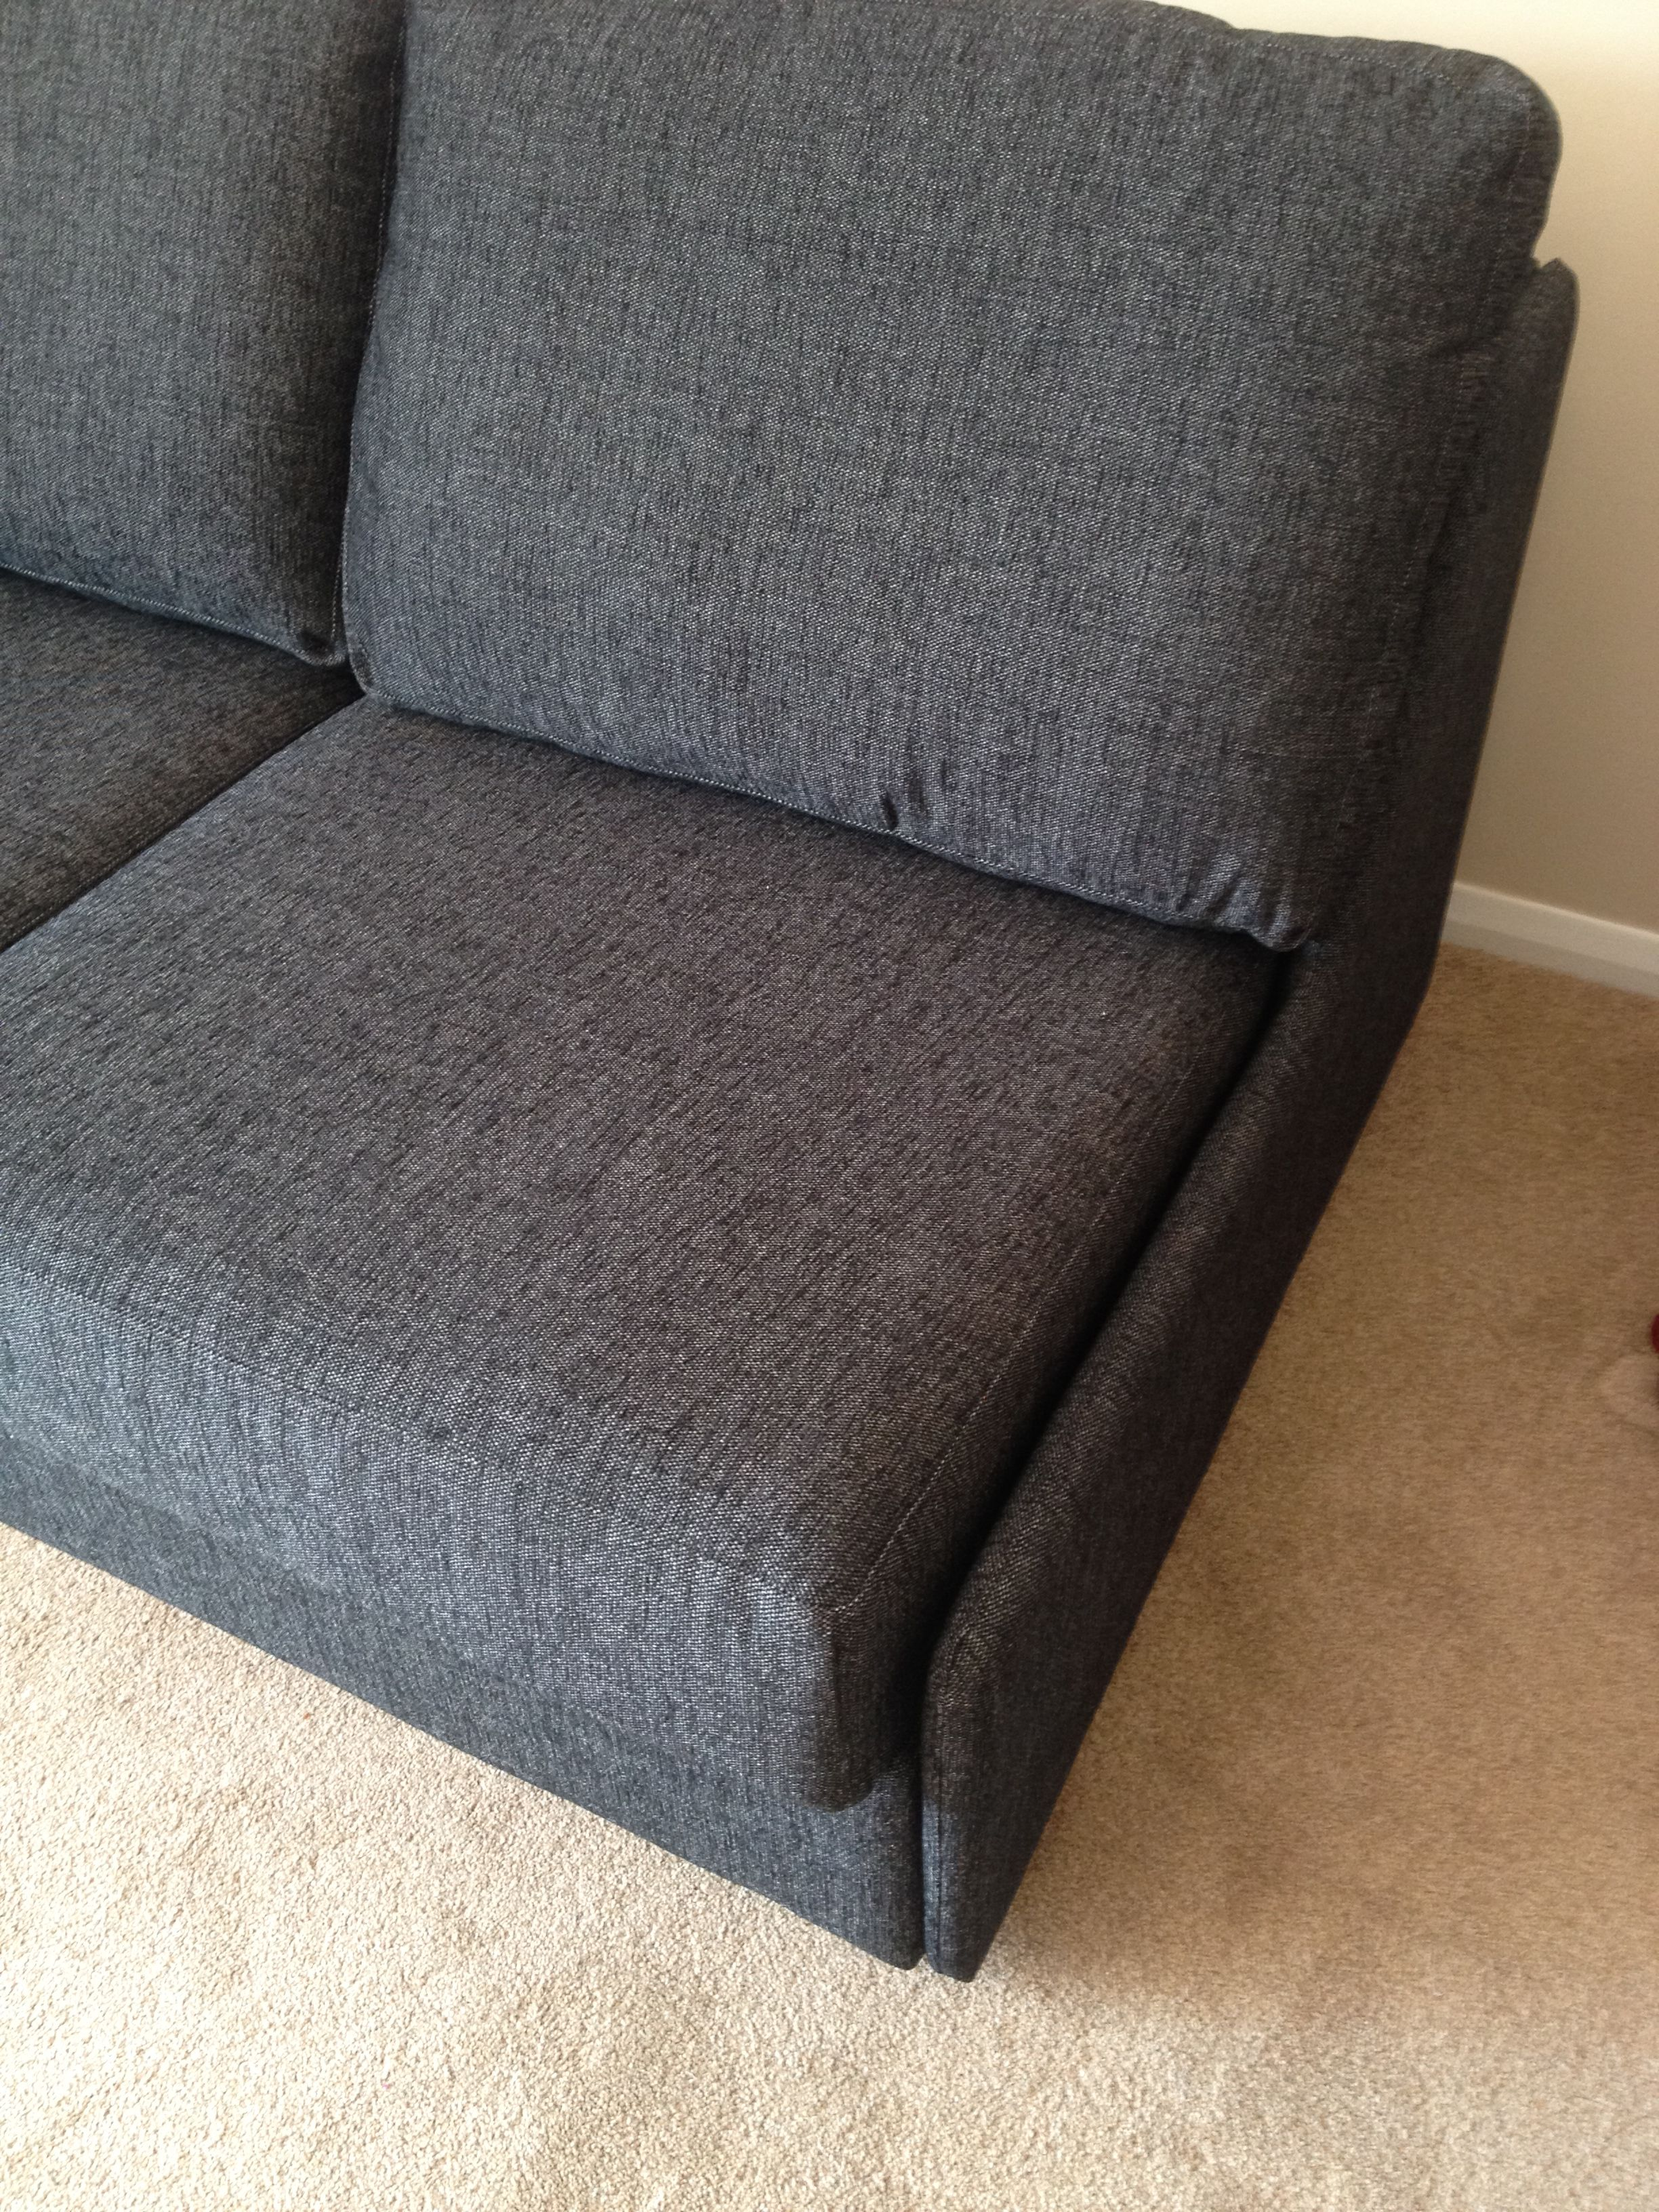 Ash sofa bed with upholstered end parts instead of arms